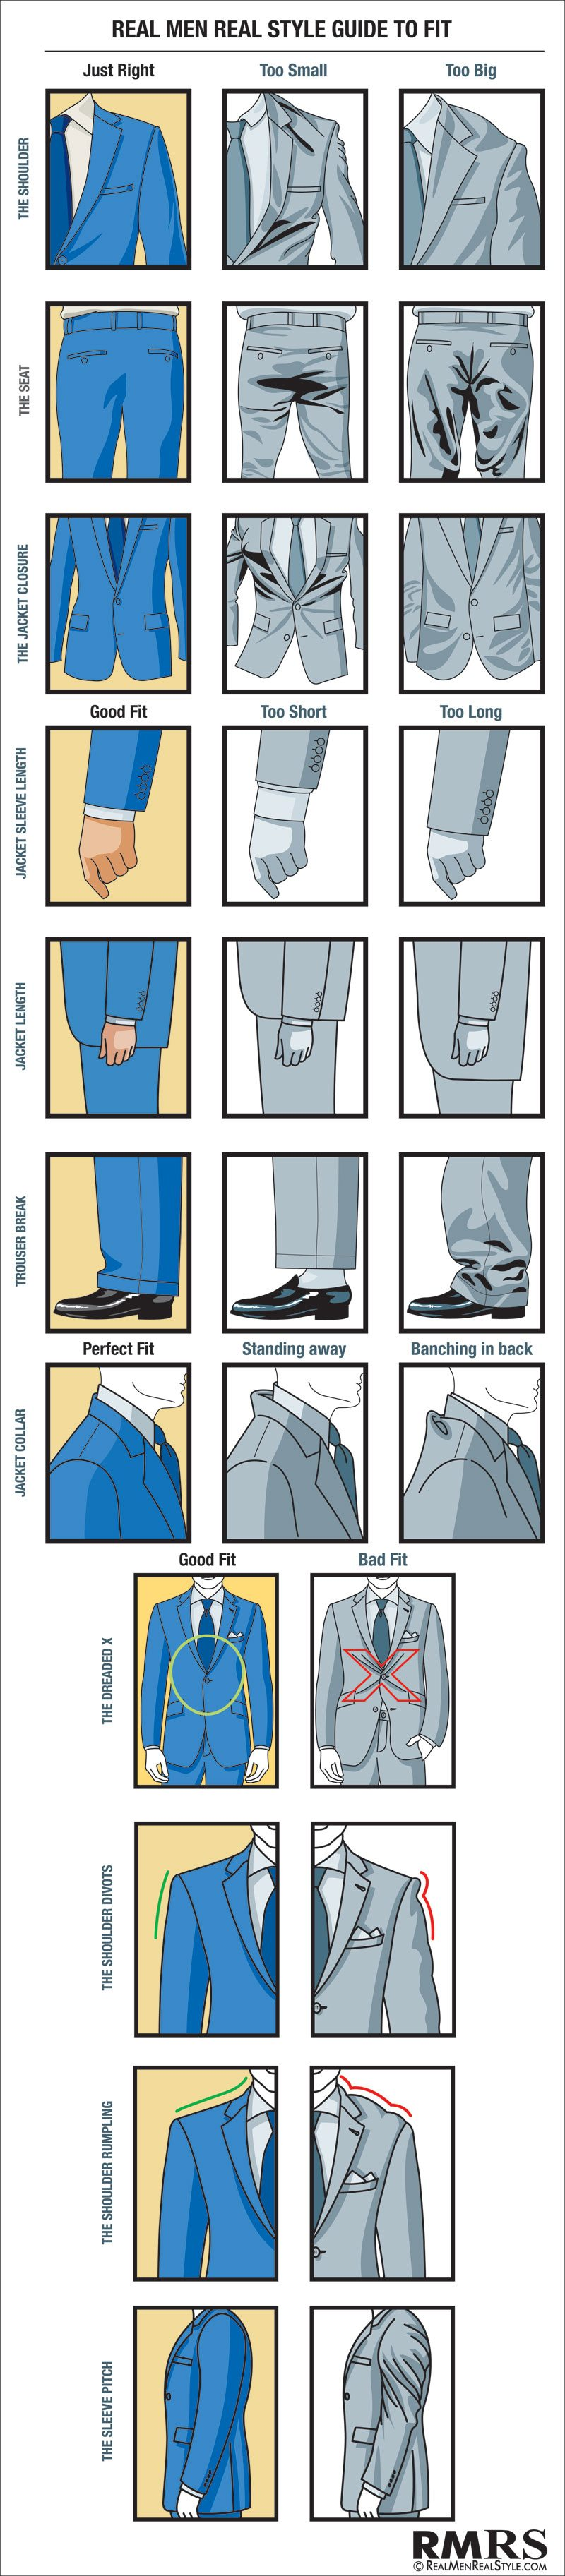 Great visual guide on how men's suits should fit!